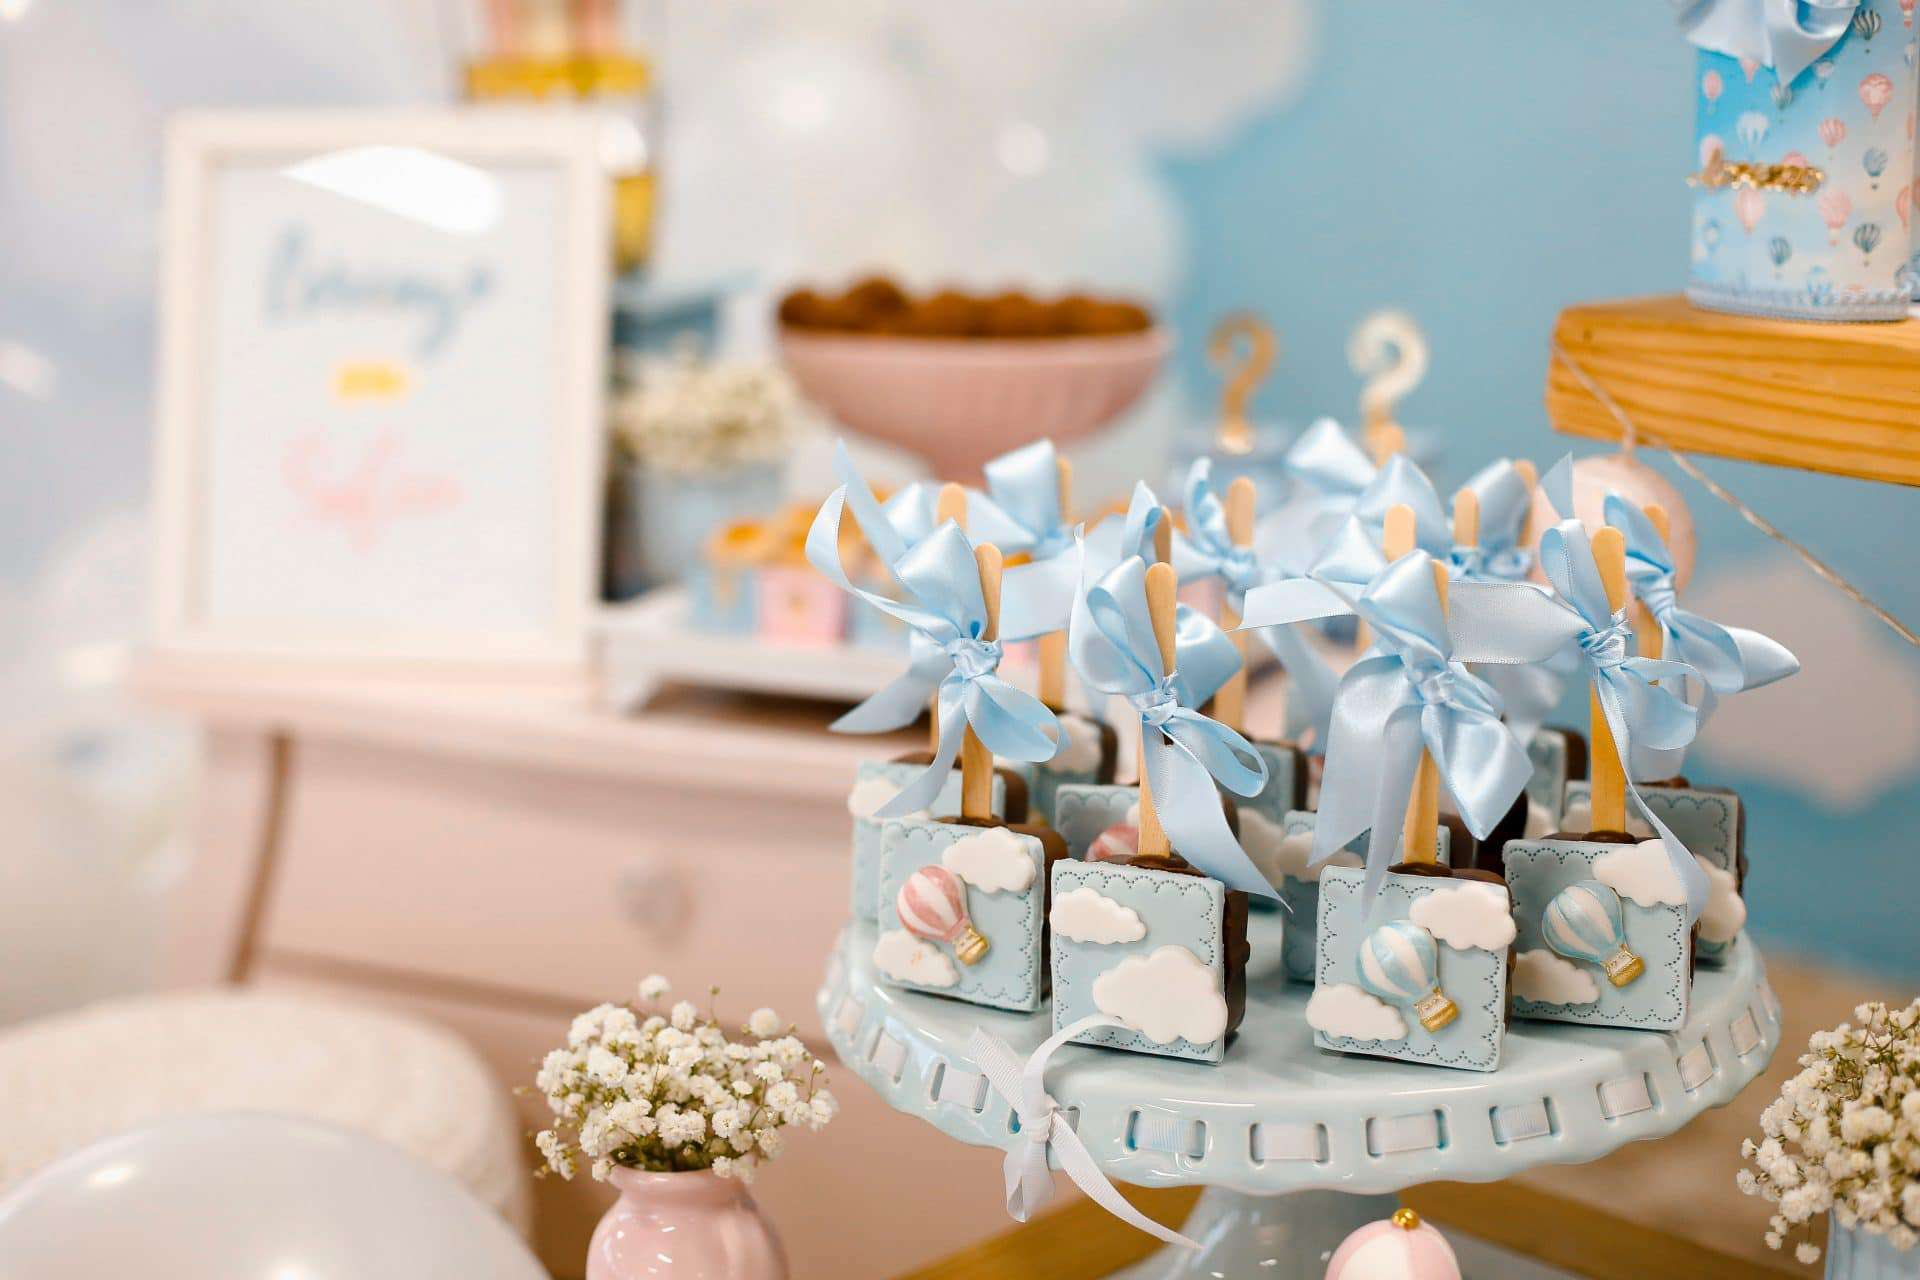 Gift Ideas For Gender Reveal Party That Guests Should Bring